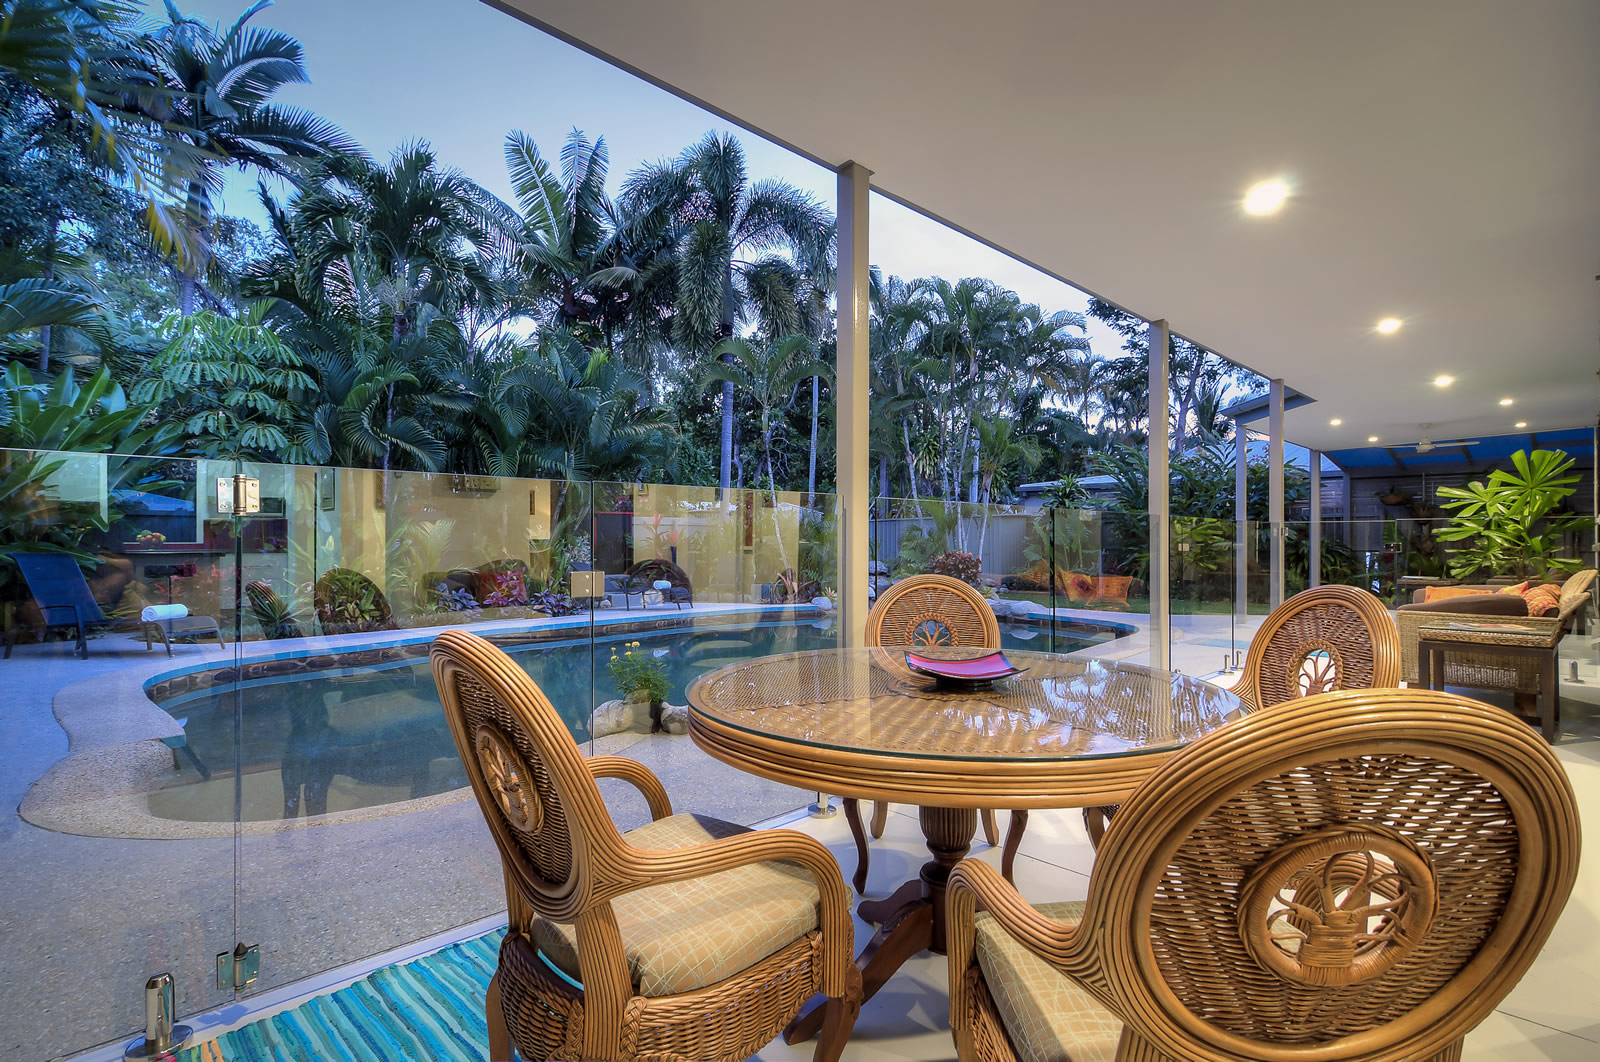 Coral Breeze is a lovely tropical retreat. It has a wonderful ambient feel taking in the magnificent tropical climate with excellent air flow.